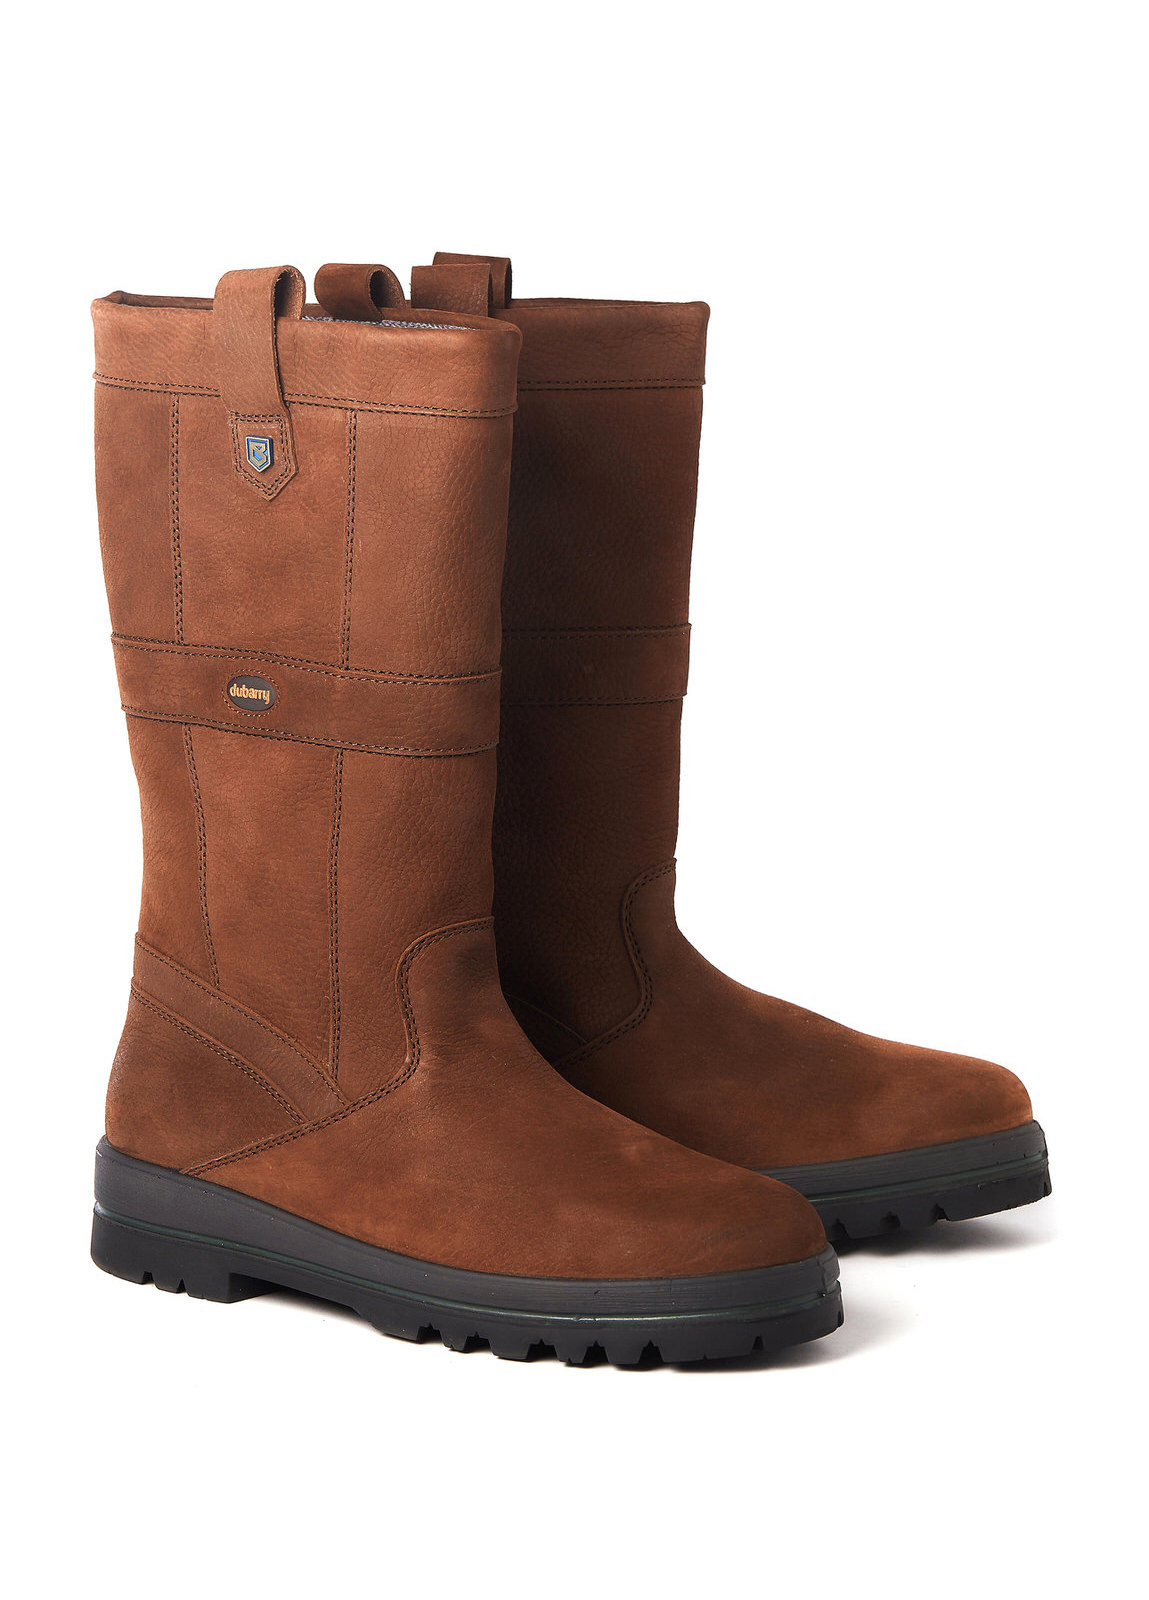 Meath_Country_Boot_Walnut_Image_1